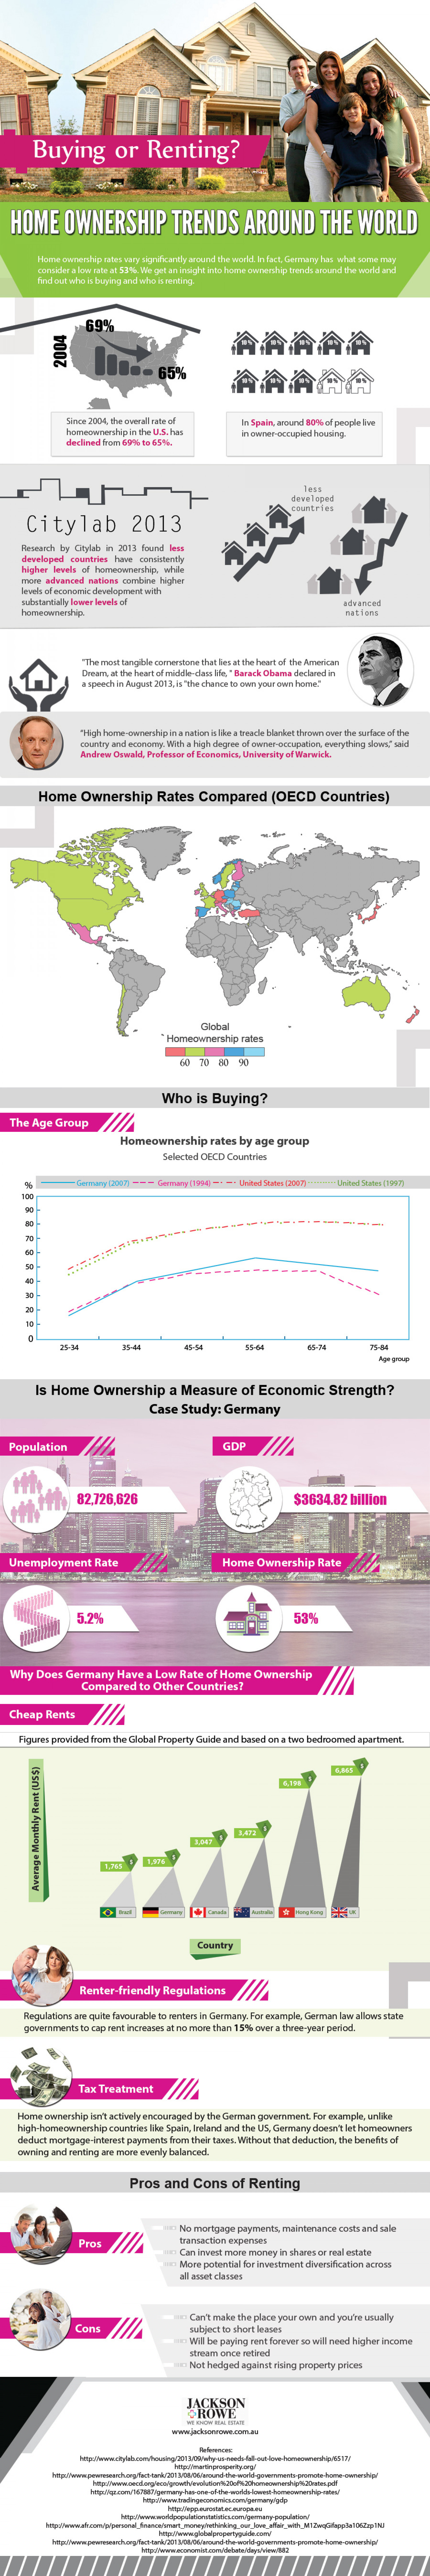 Home Ownership Trends Around the World Infographic